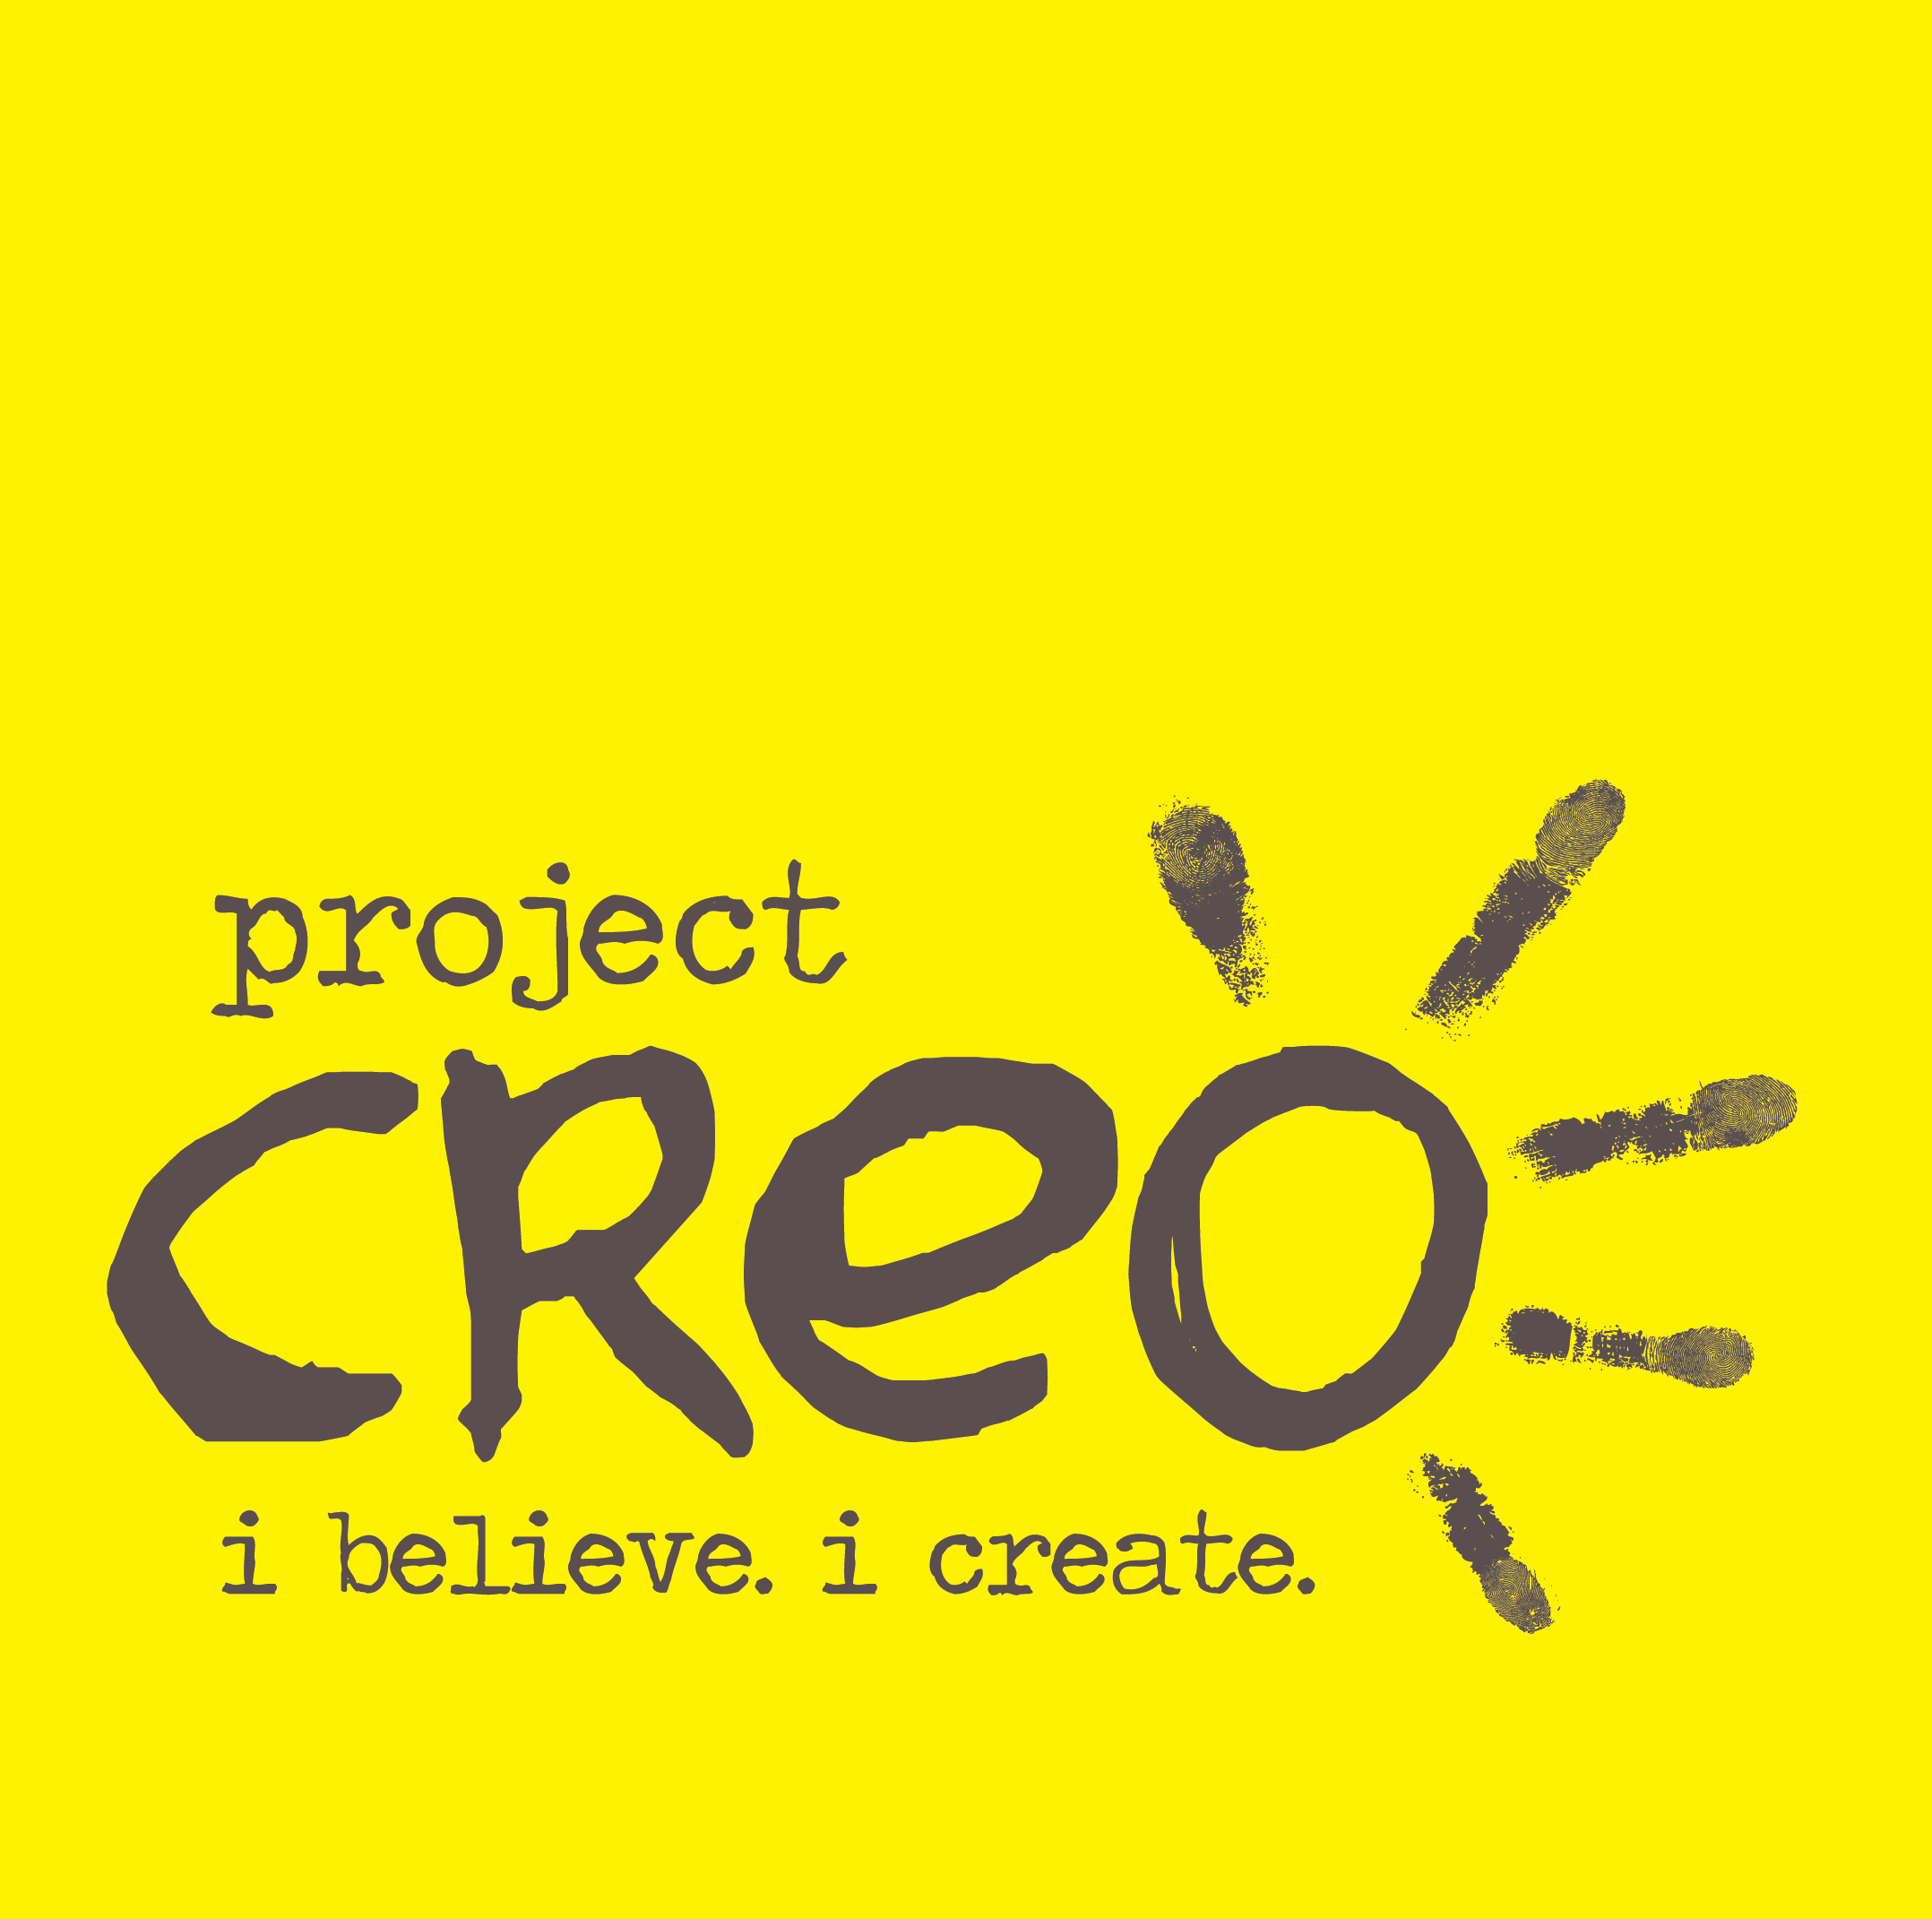 Project creo - Creo projects ...